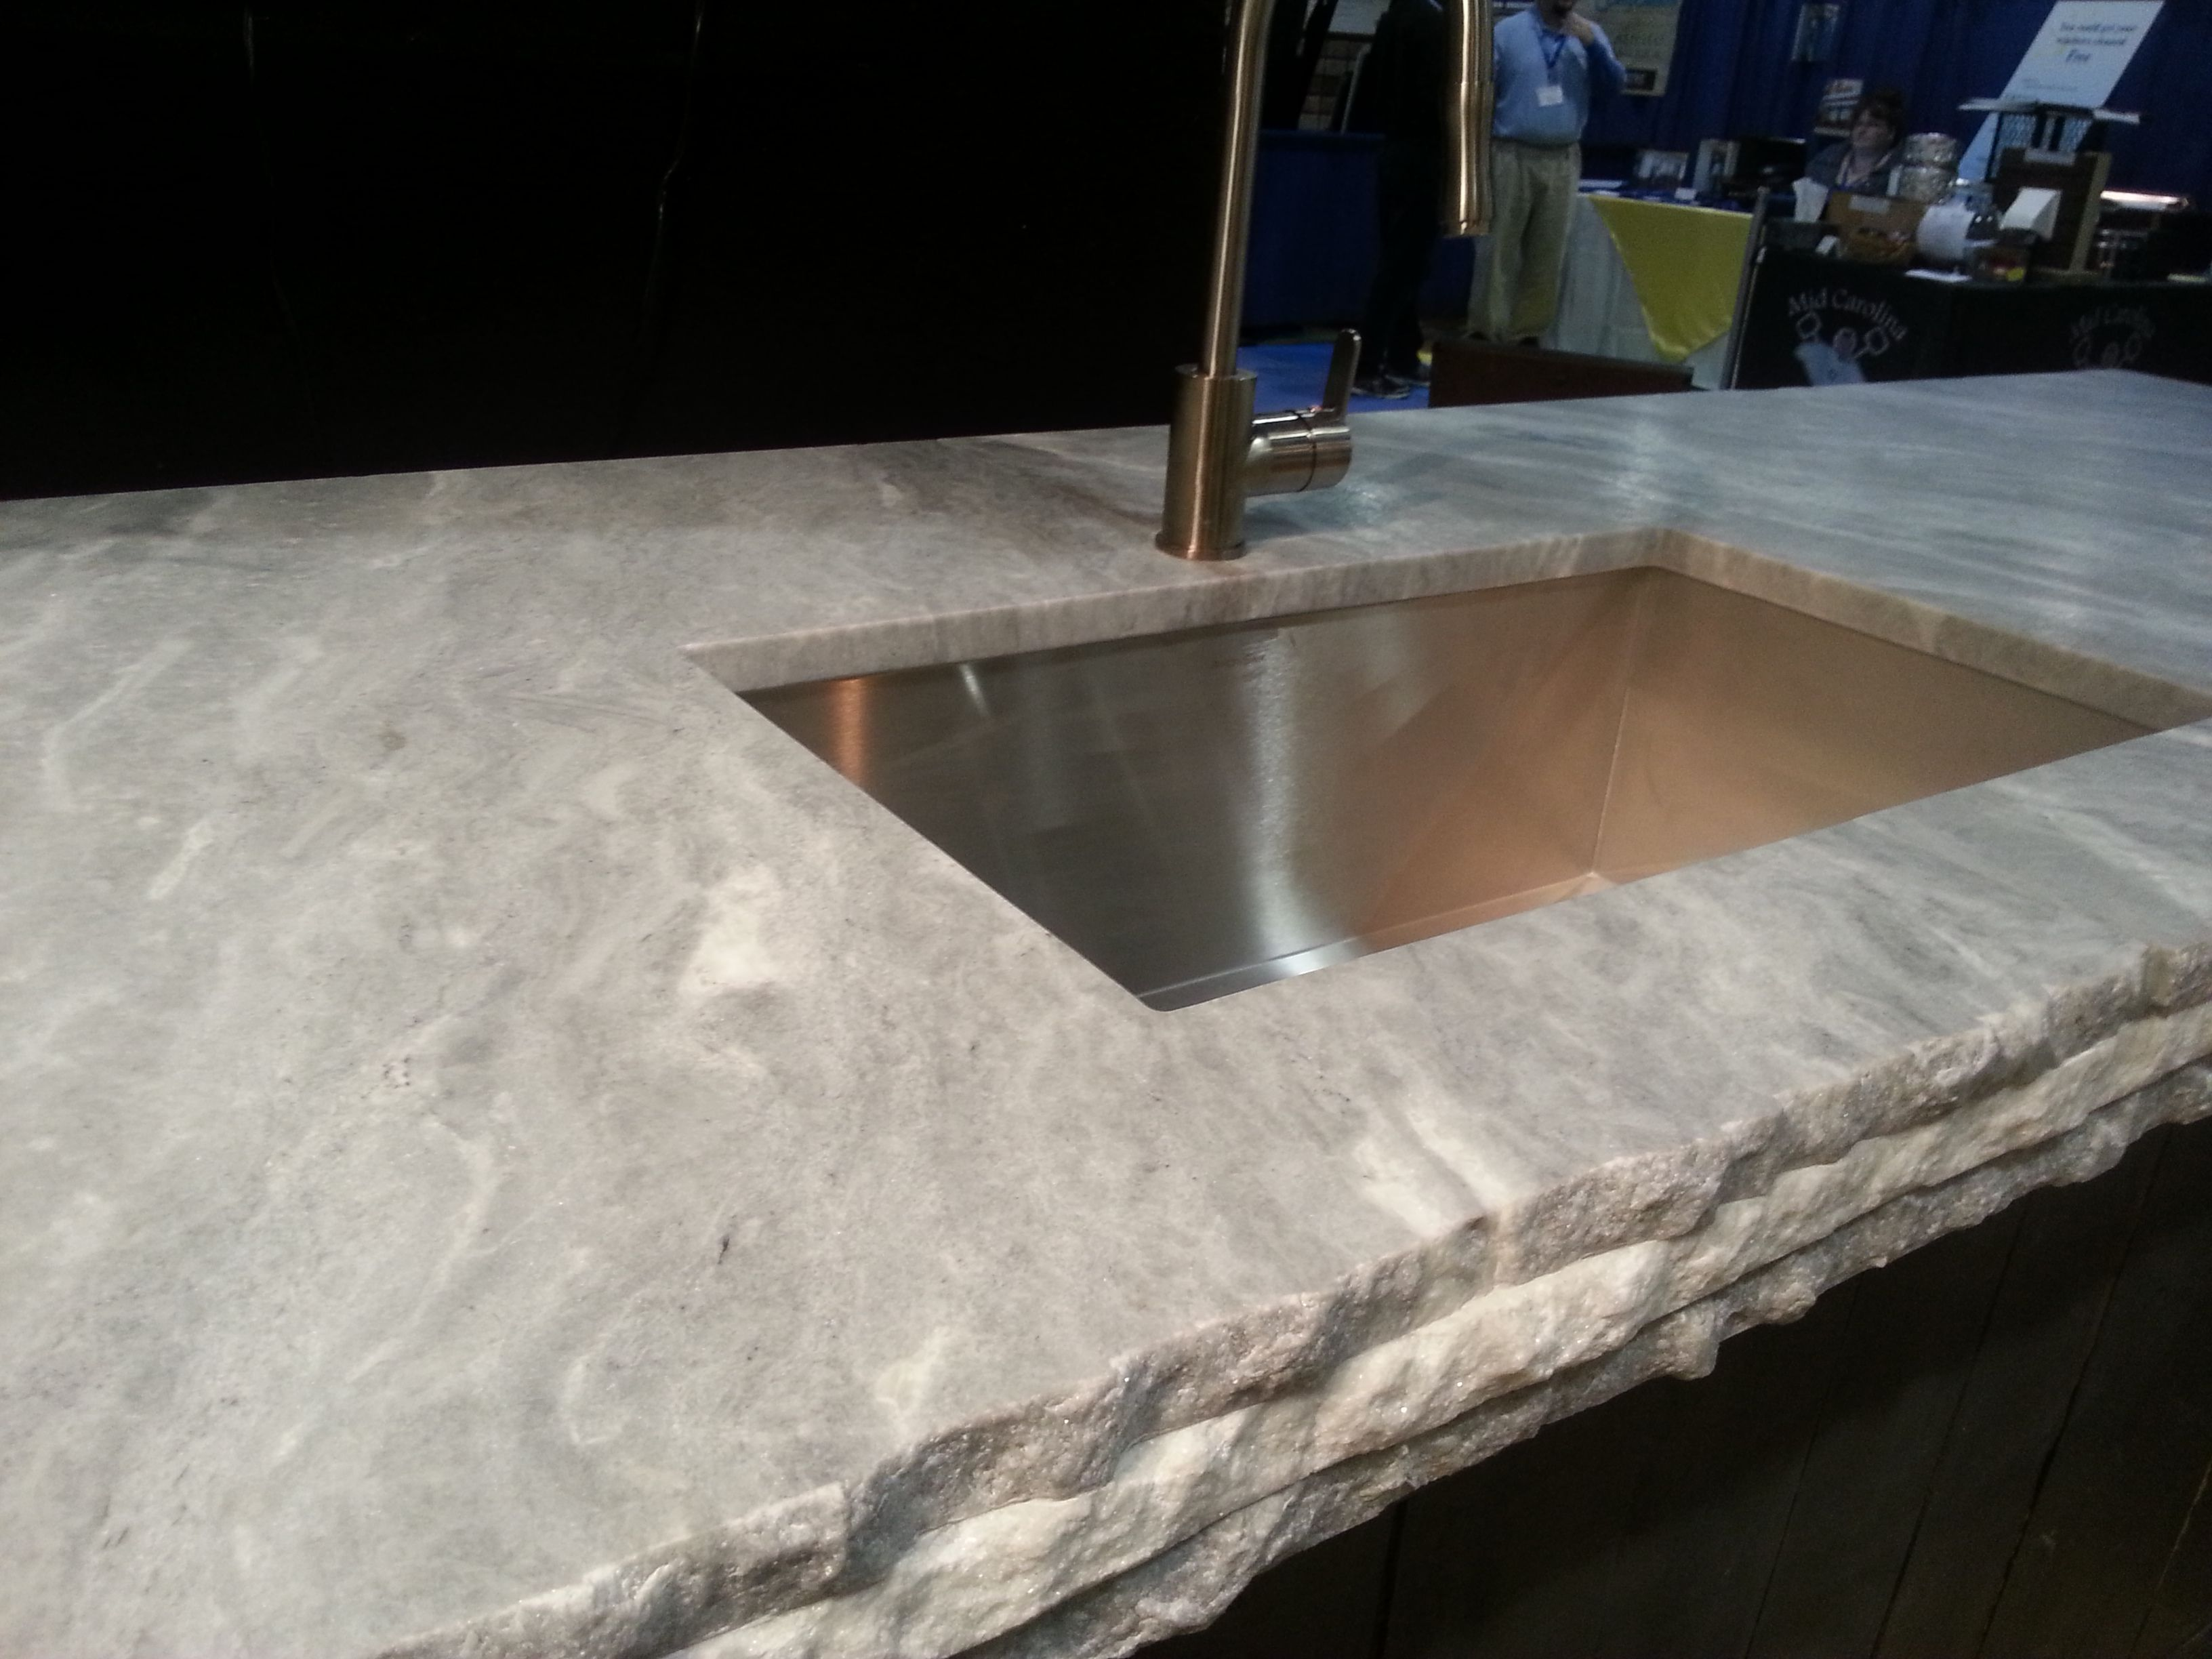 Sky White Quartzite With A Leathered Finish No Substitute For The